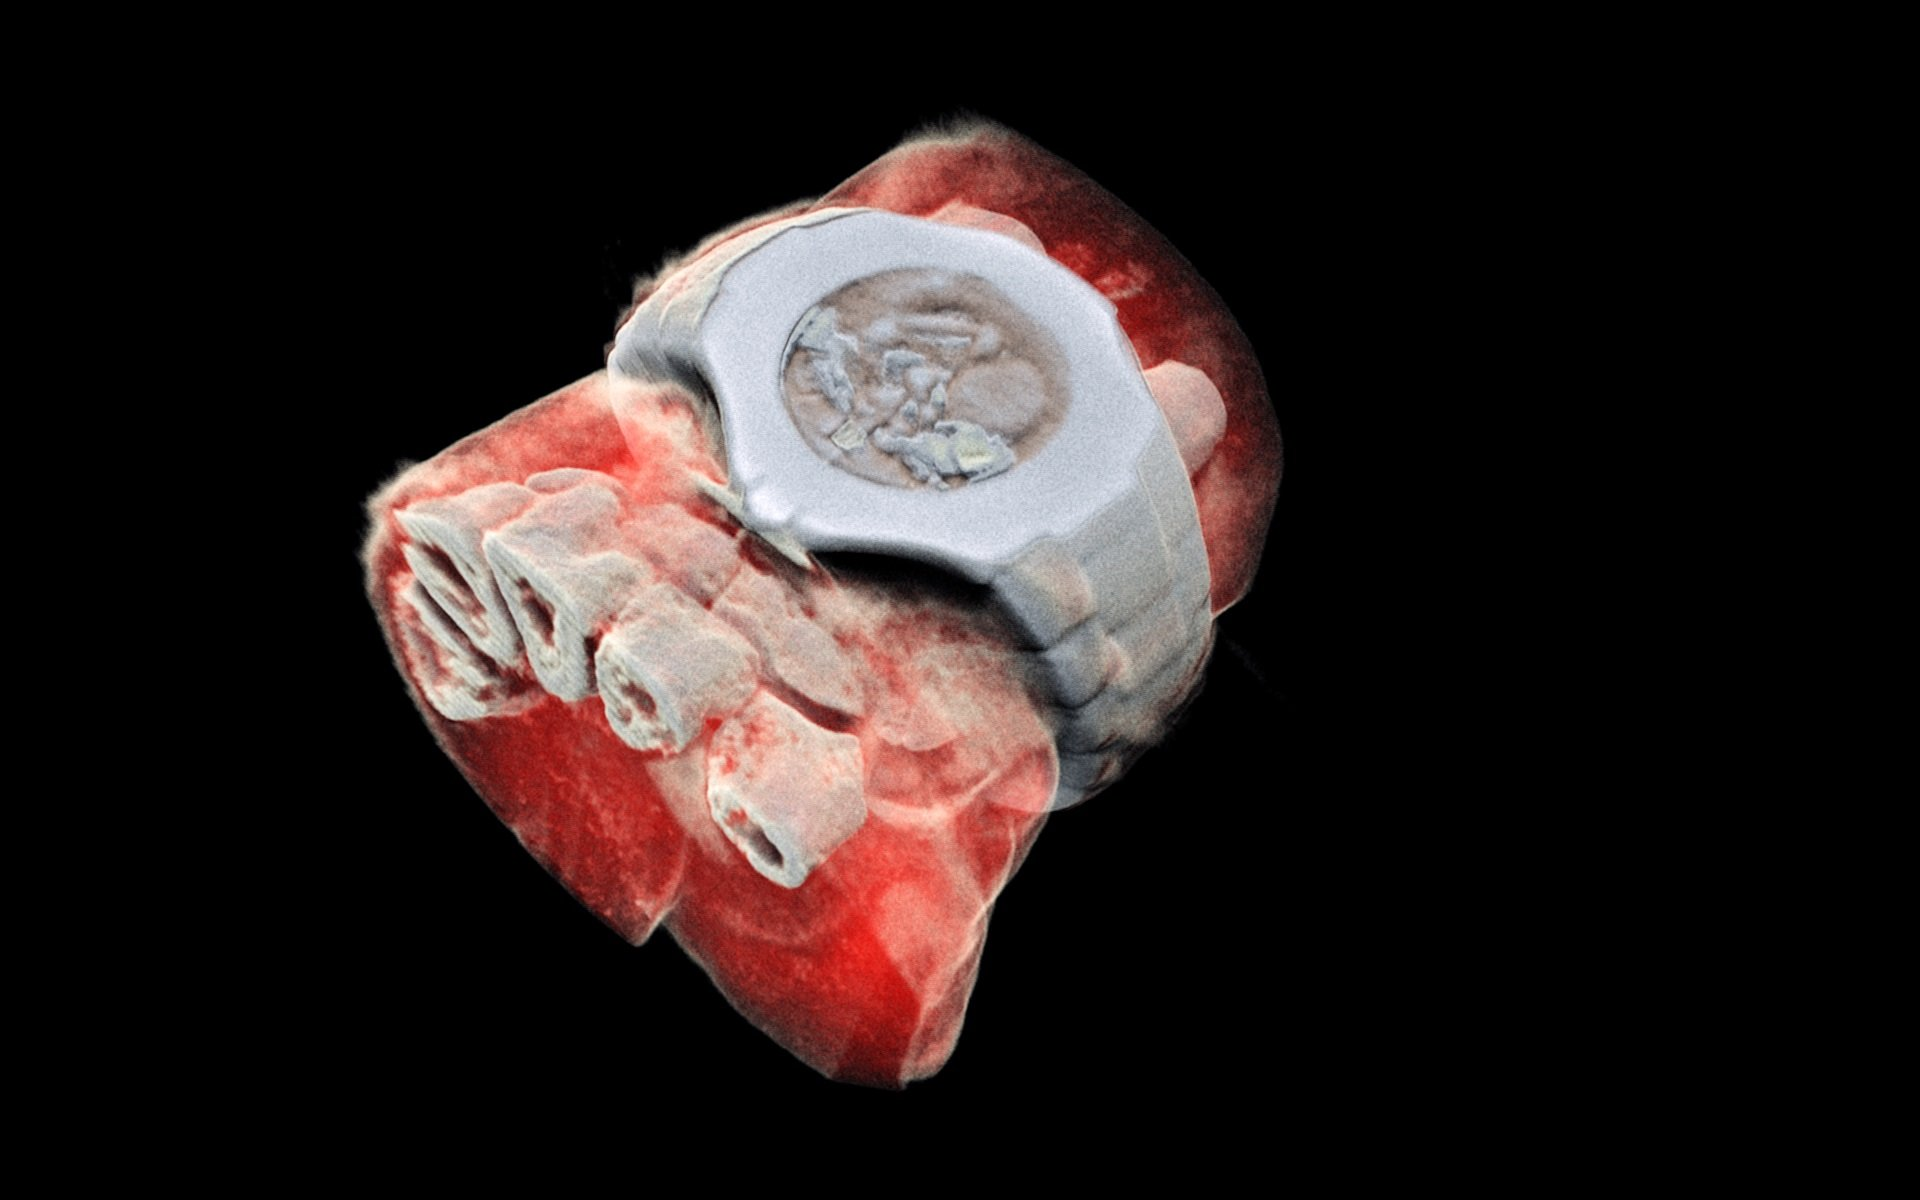 A 3D MARS image of a wrist with a watch showing part of the finger bones in white and soft tissue in red.